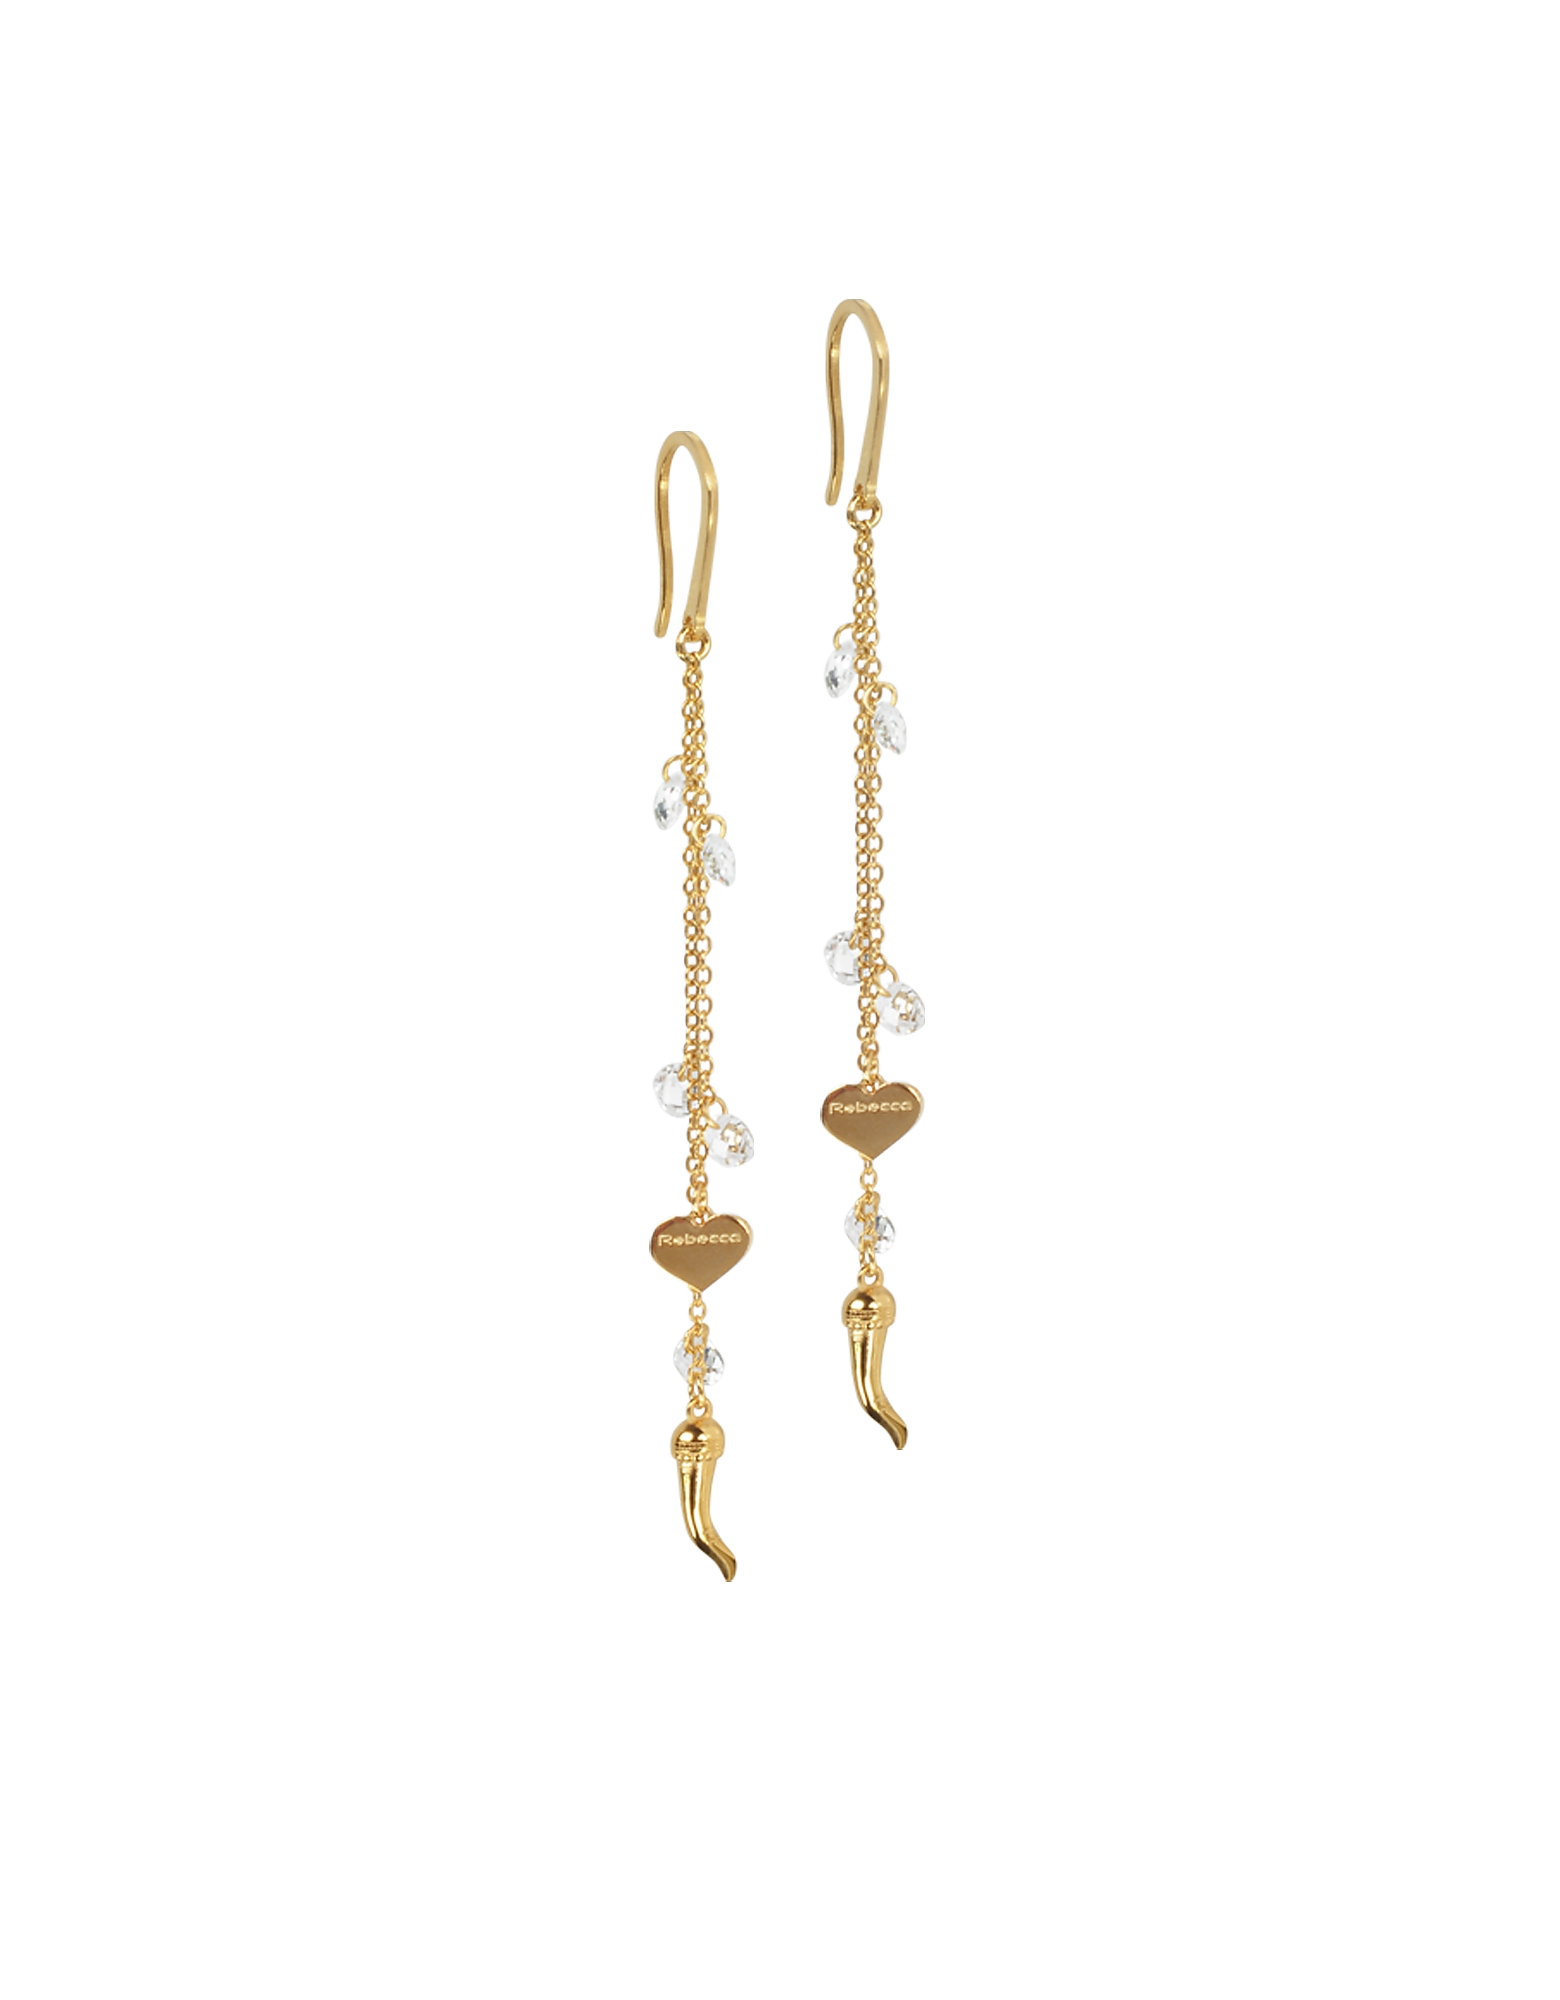 Lucciole Gold Plated Sterling Silver Earrings w/Crystals